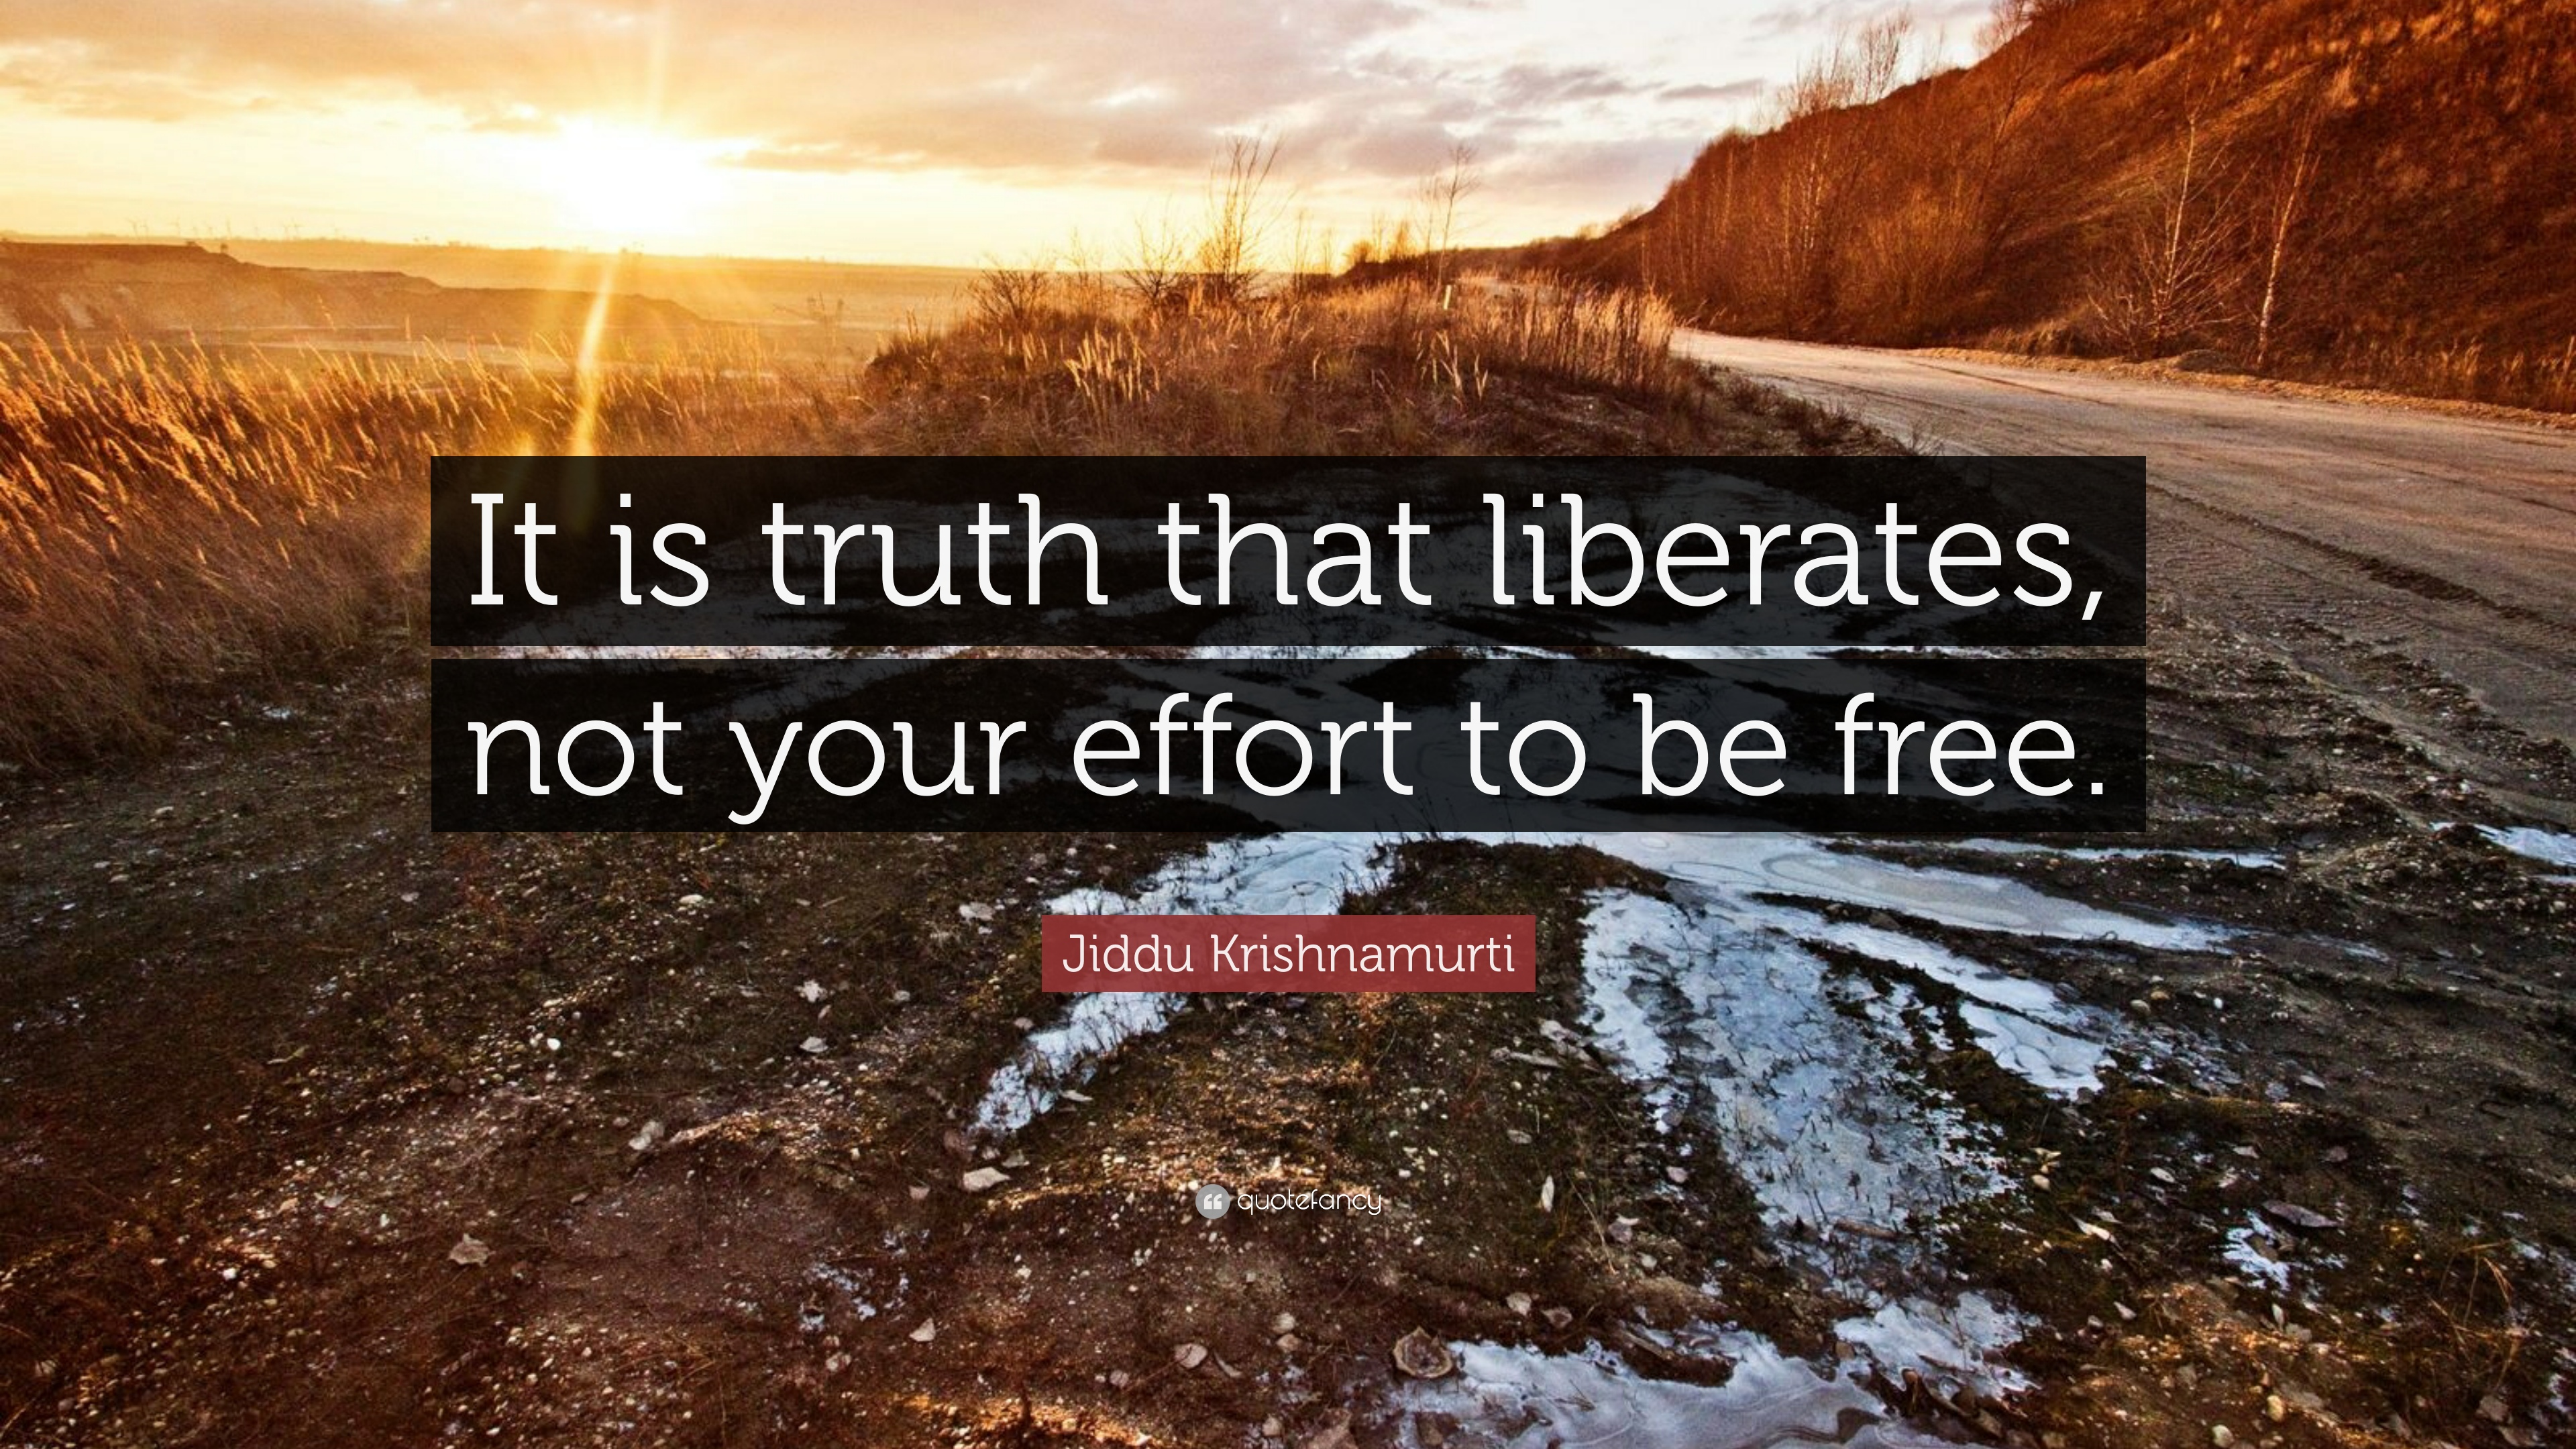 Jiddu-Krishnamurti-Quote-It-is-truth-that-liberates-not-your